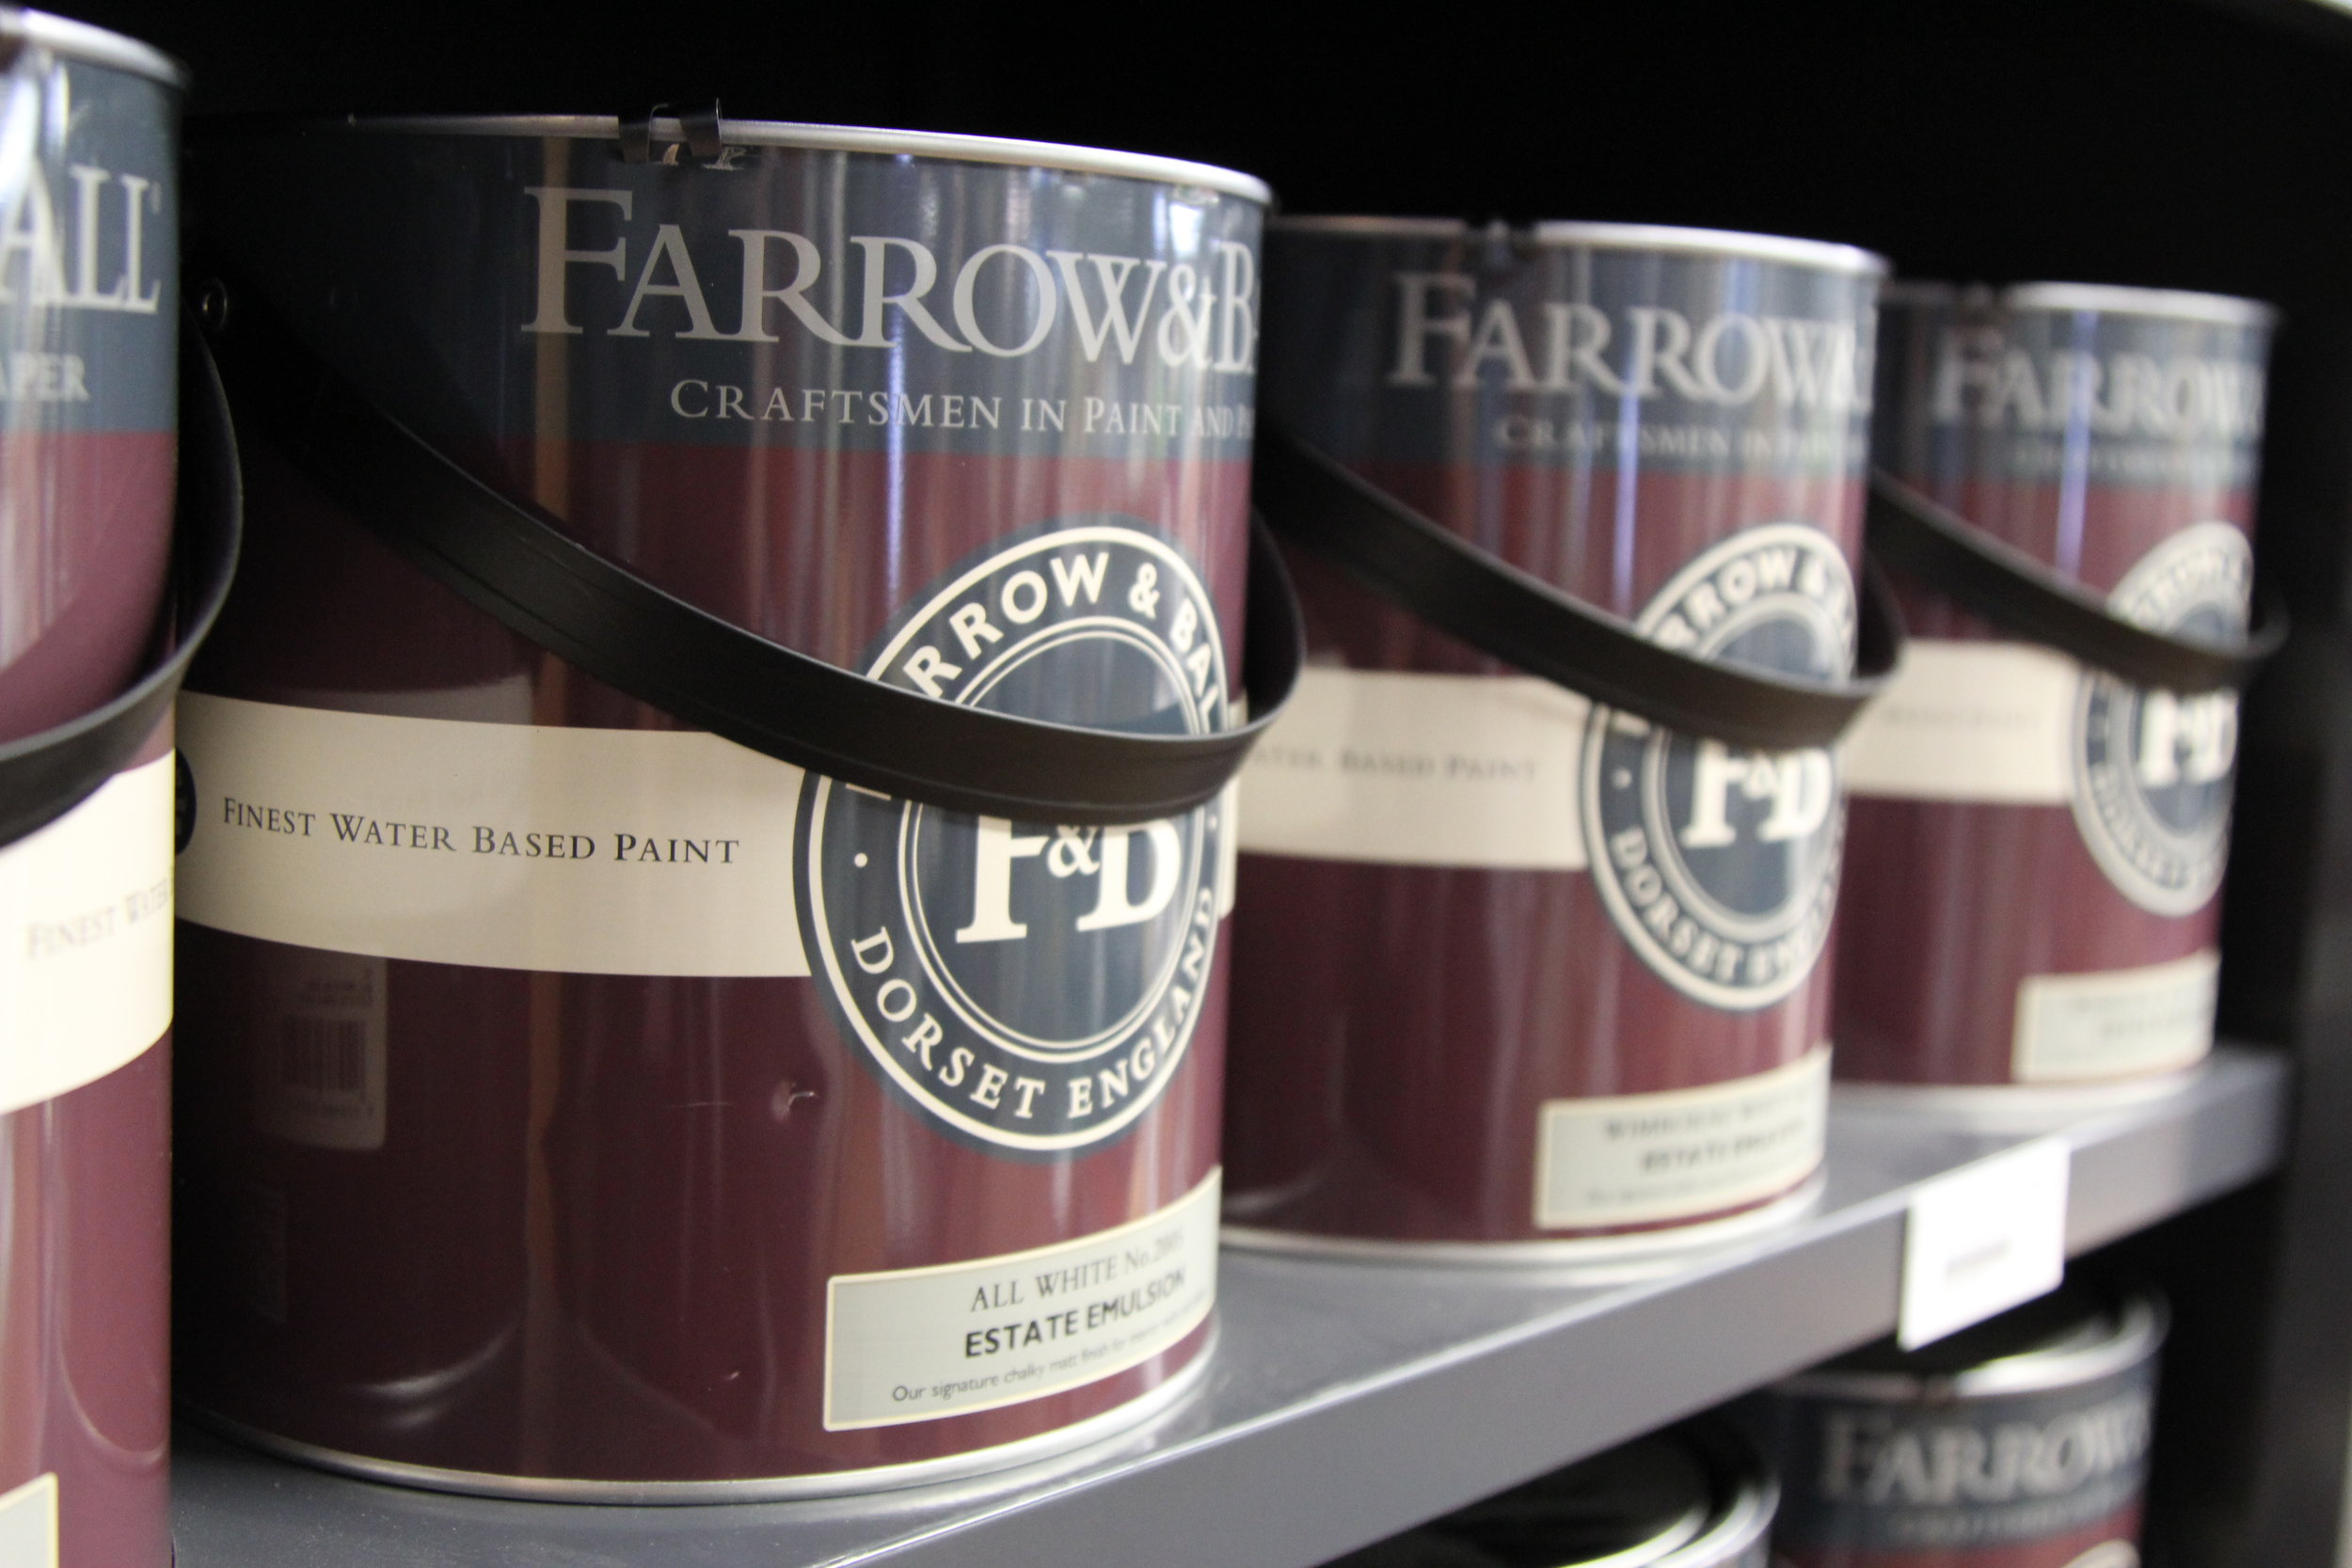 Farrow & Ball  Farrow & Ball is dedicated to creating unmatched paint using only the finest quality ingredients. Still made in Dorset, England, home to Farrow & Ball since 1946, its distinctive paint colors are renowned for their depth, bringing walls to life.